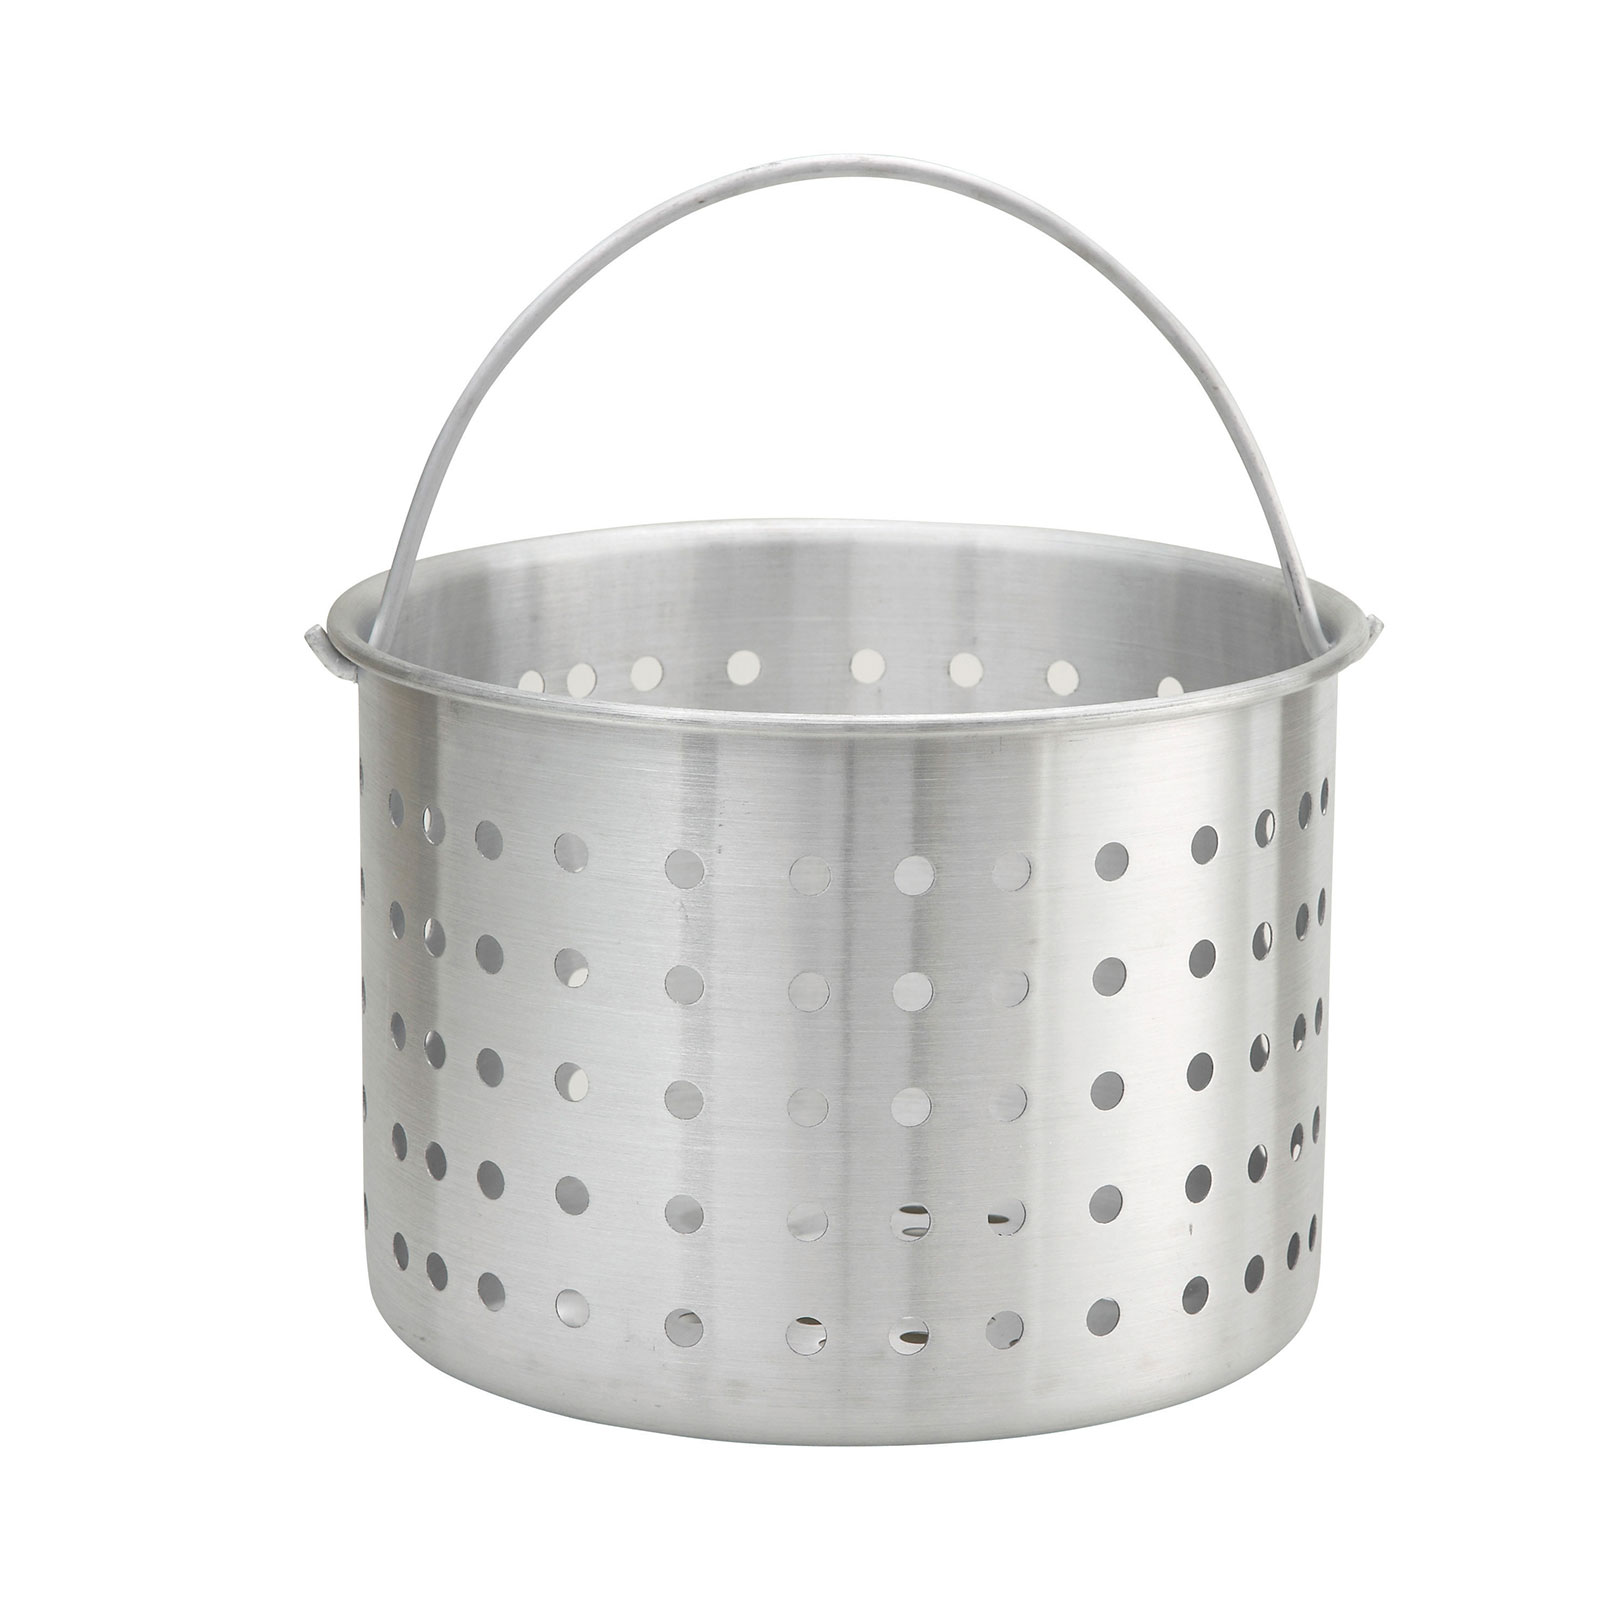 Winco ALSB-32 stock / steam pot, steamer basket